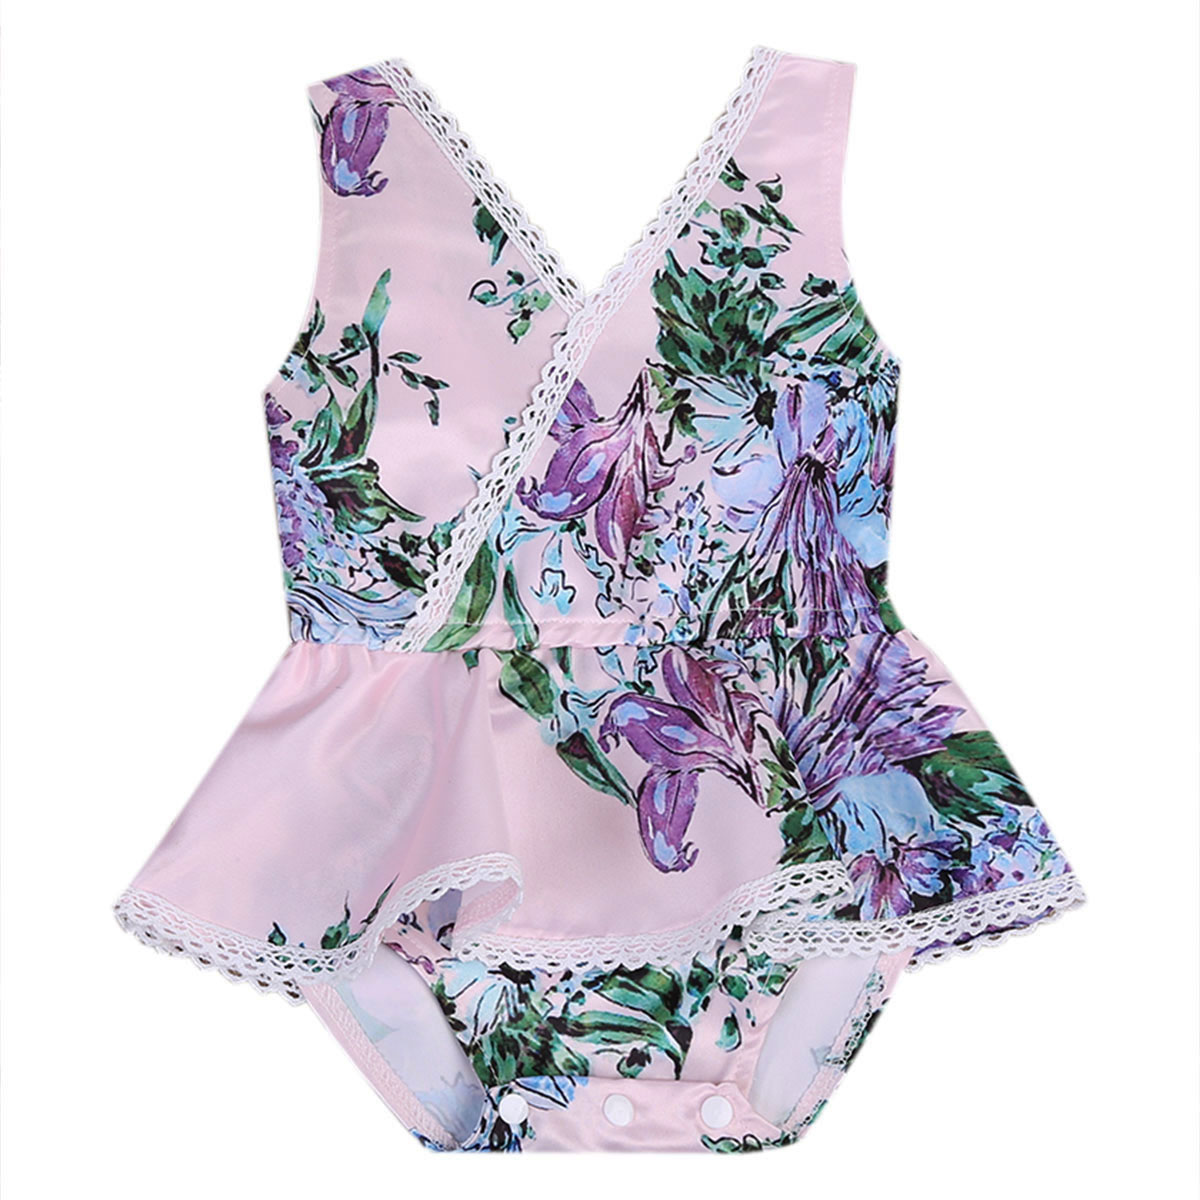 Fashion Floral Baby Girls Lace Lily Romper Jumpsuit One-Pieces Summer Outfits Cotton Clothes